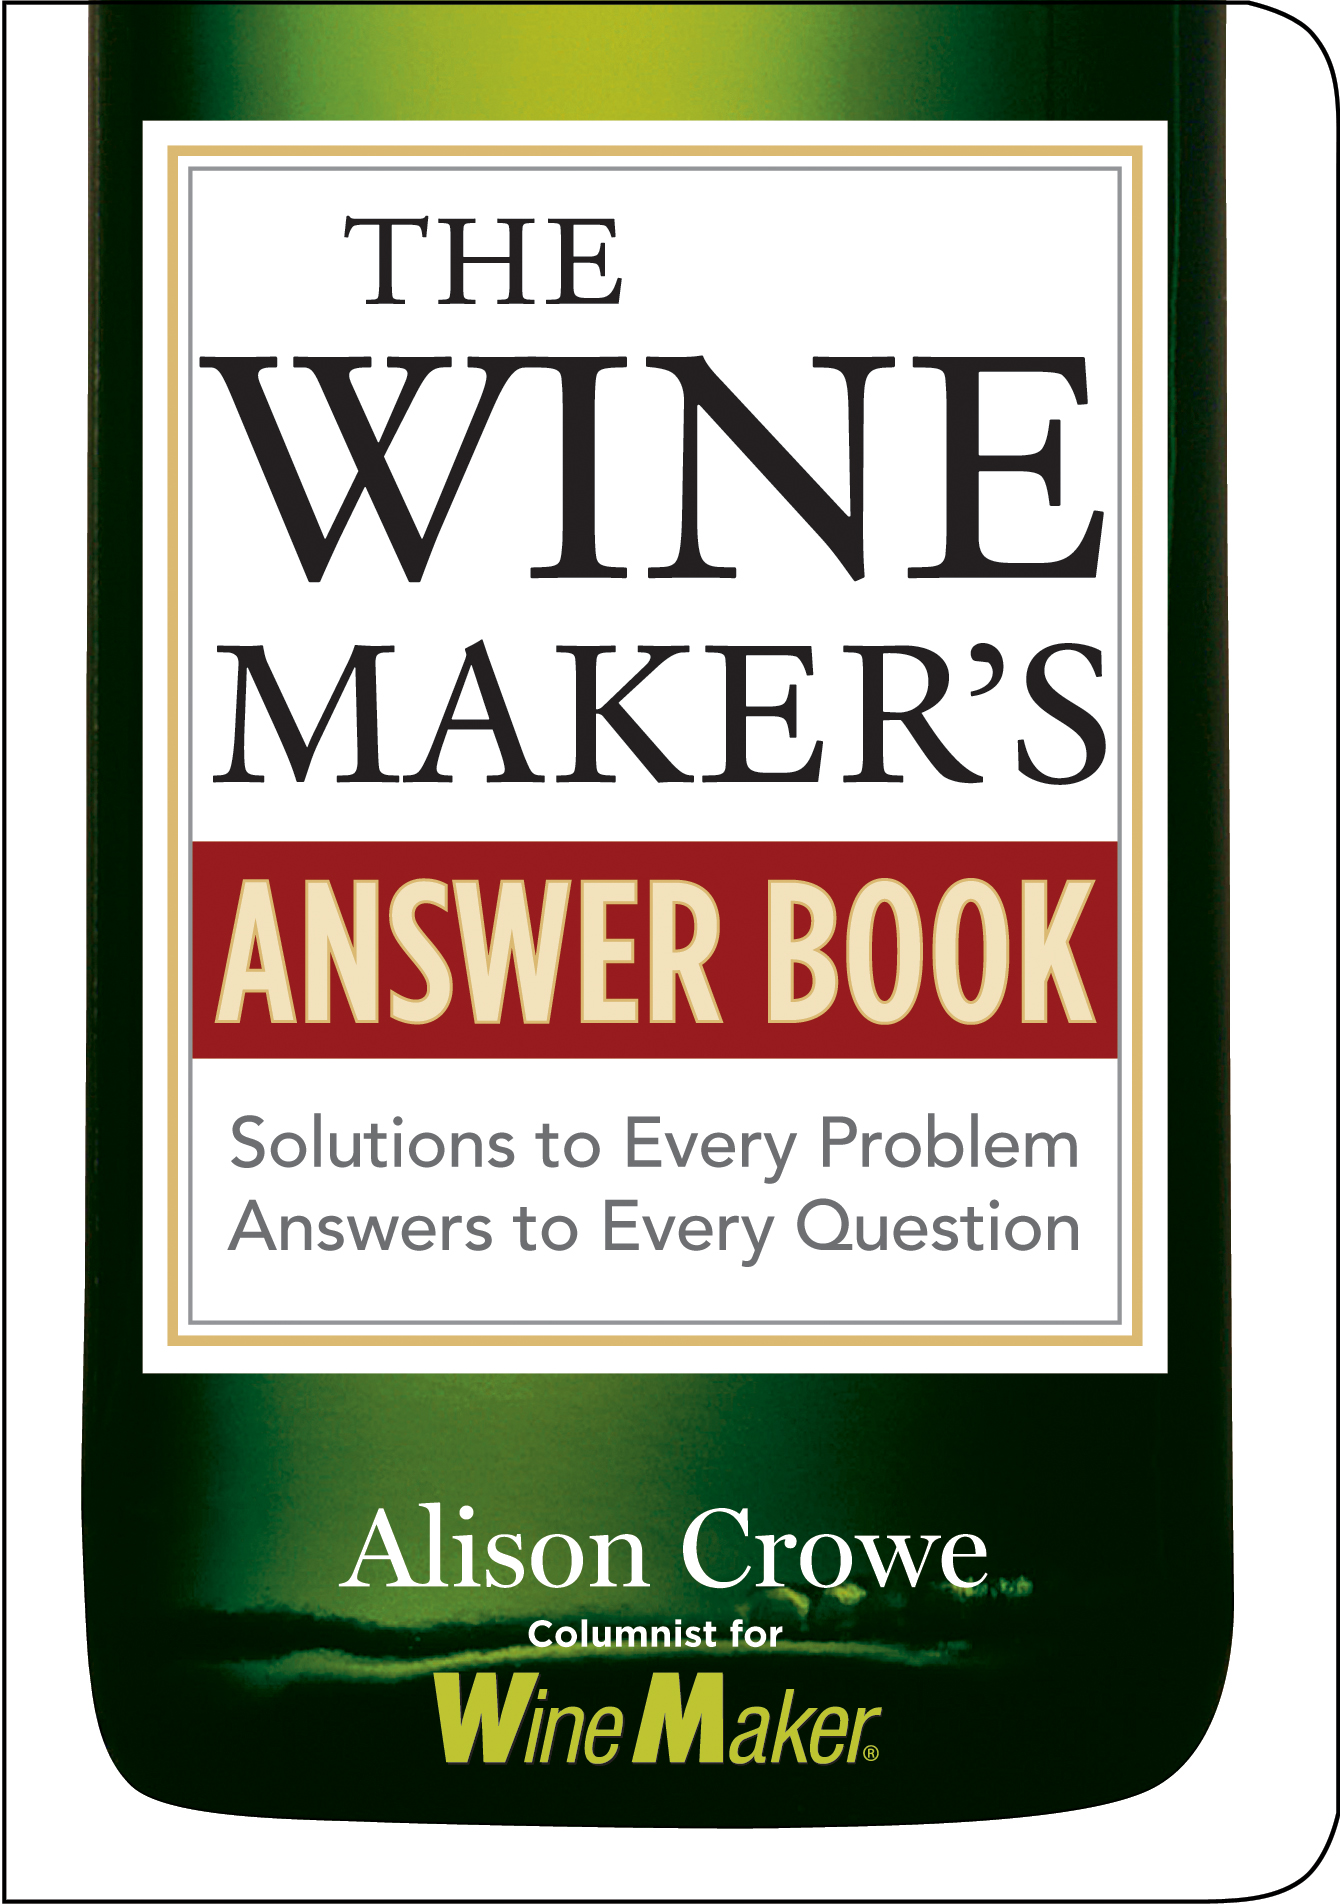 The Winemaker's Answer Book Solutions to Every Problem; Answers to Every Question - Alison Crowe